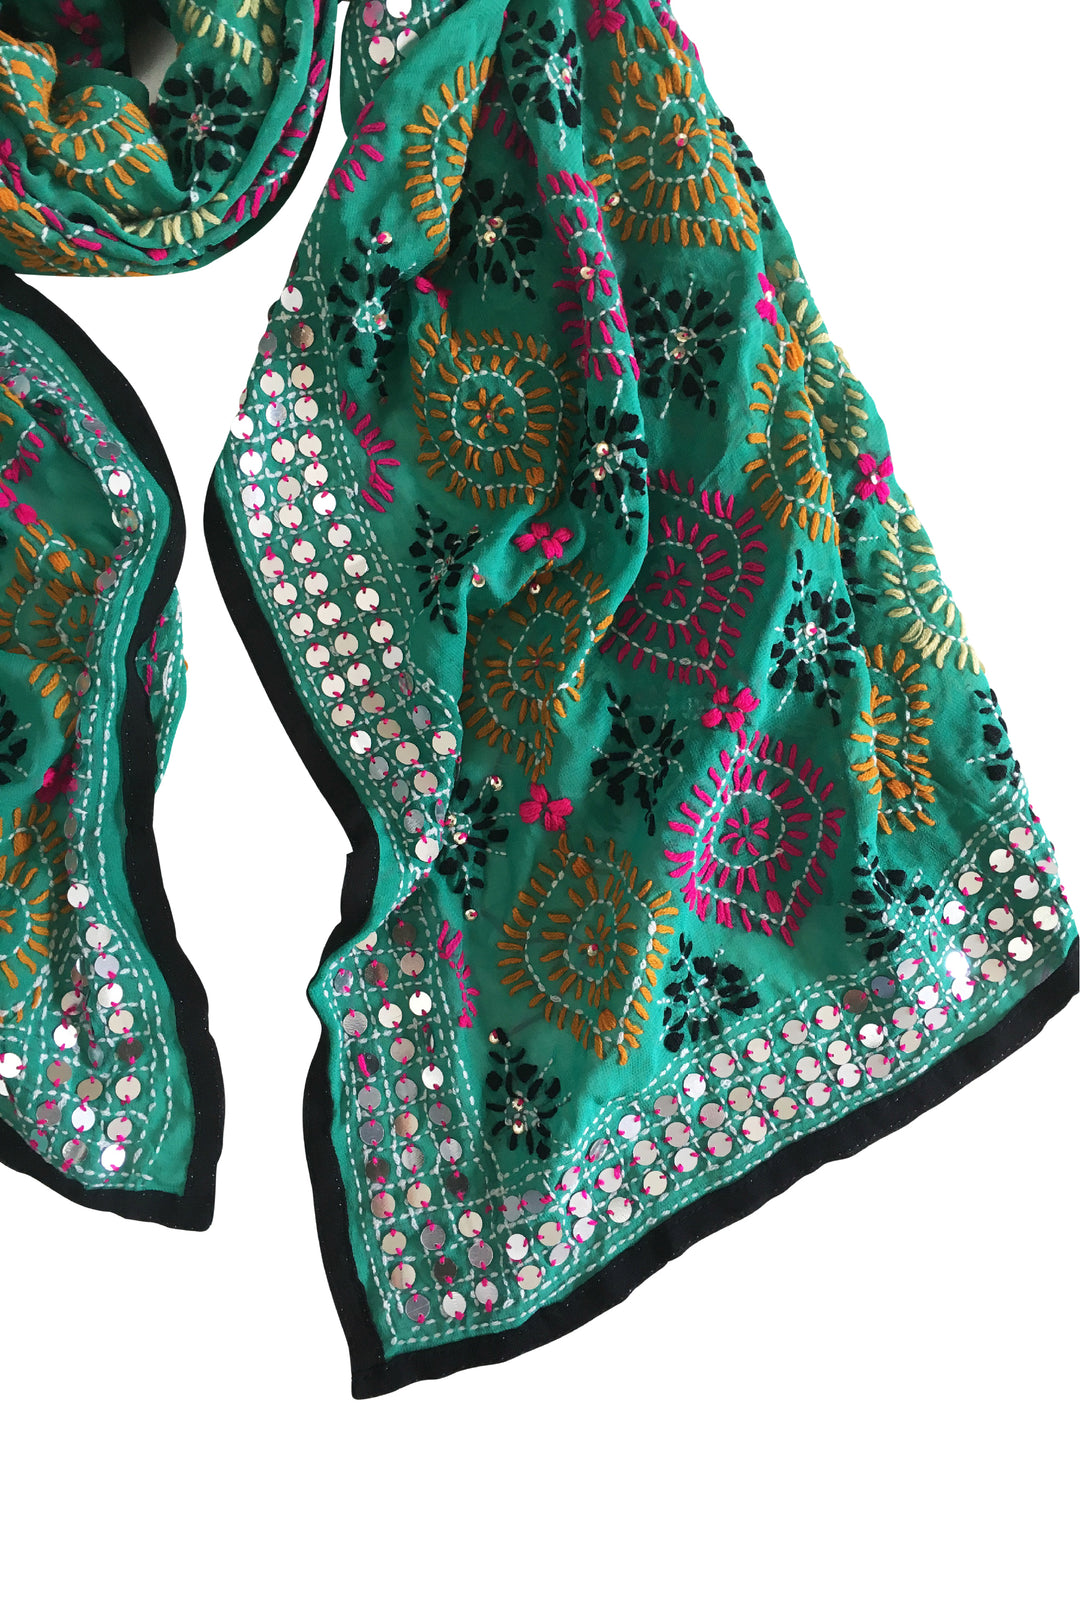 green embroidered punjab shawl